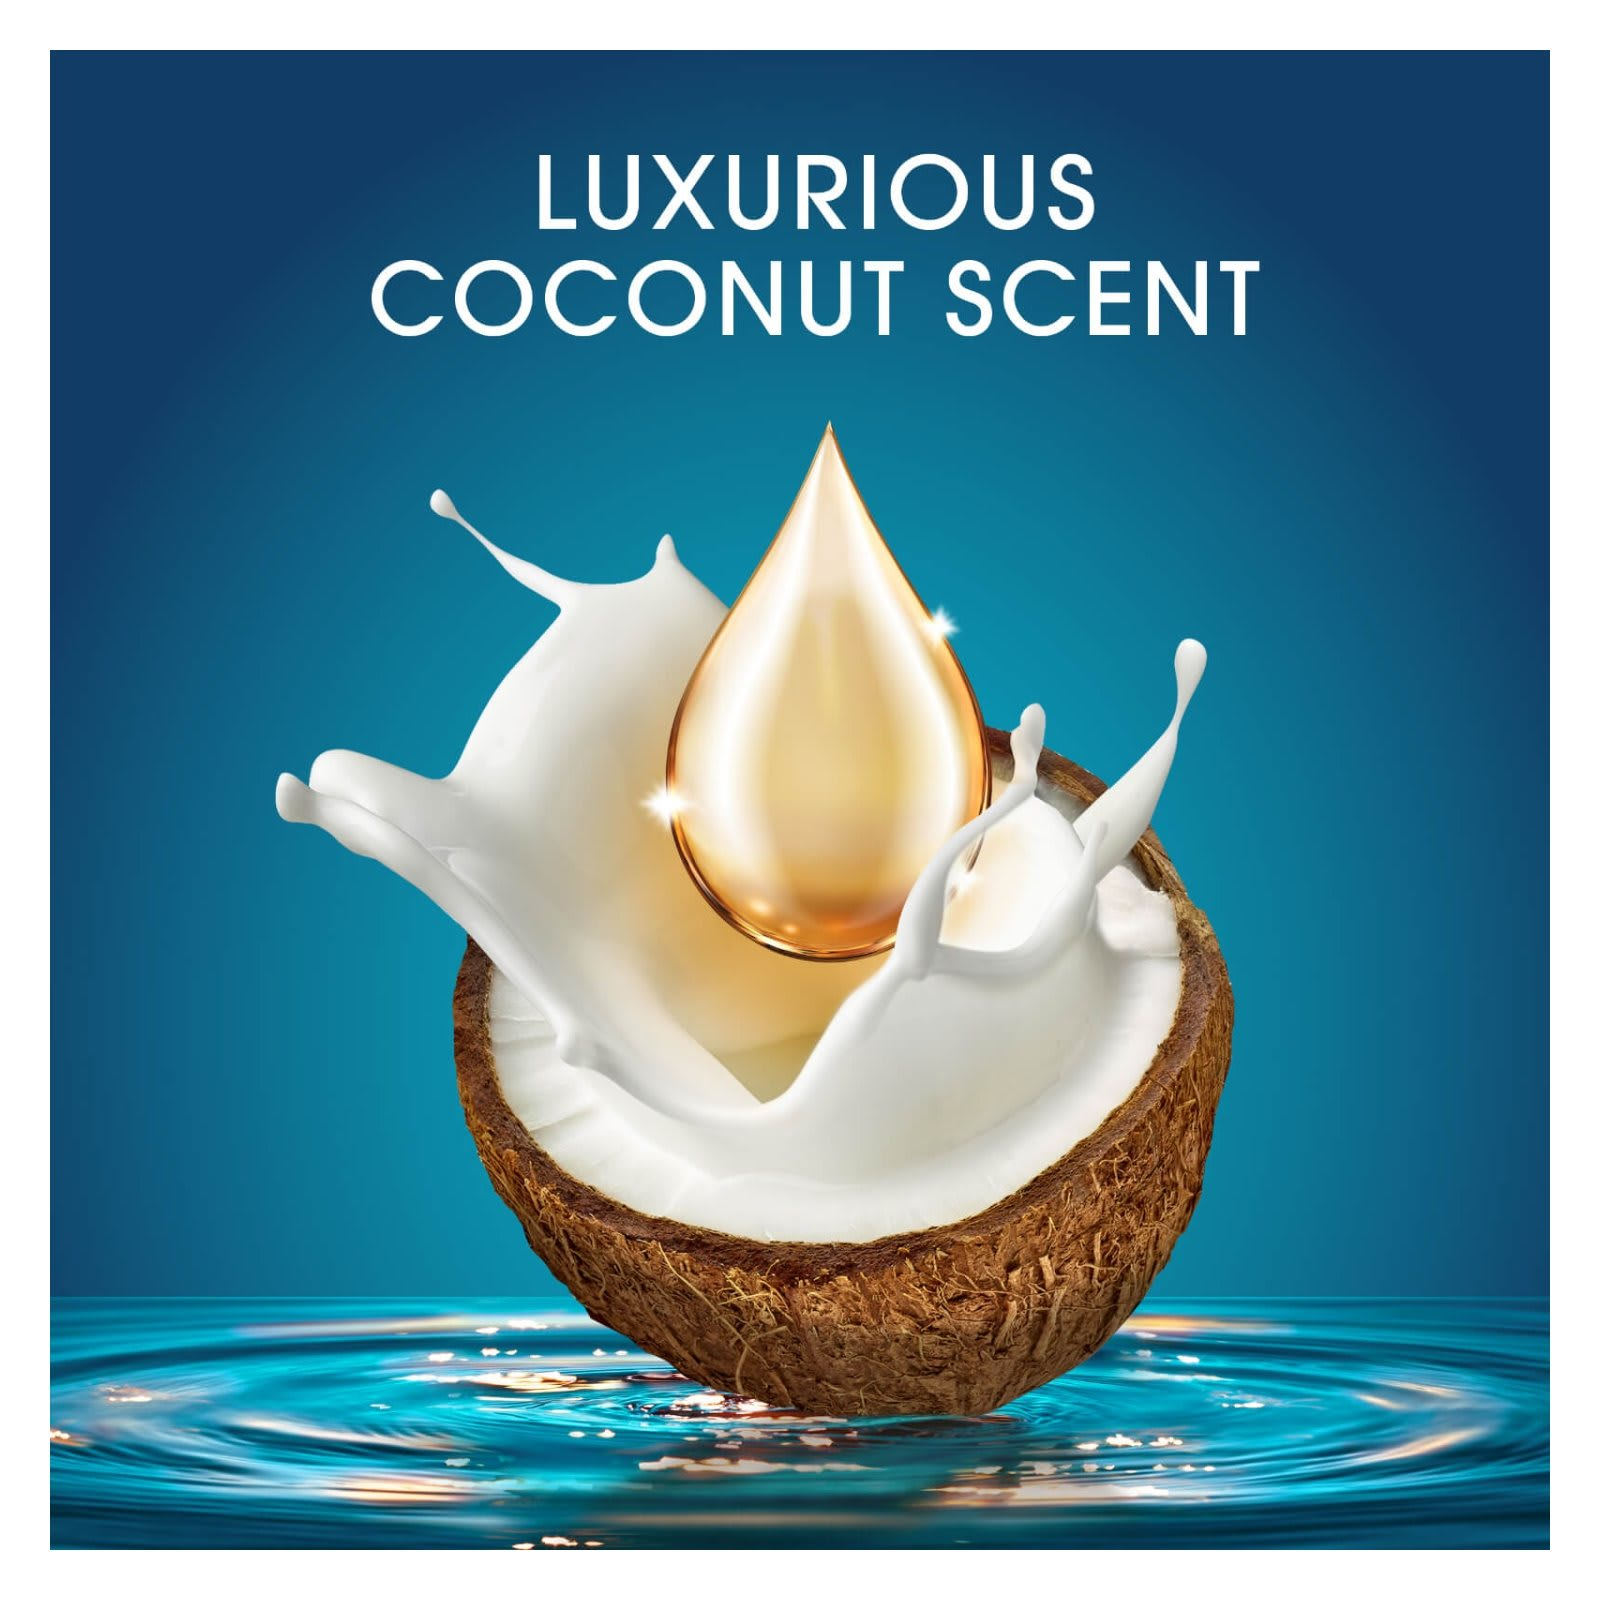 Luxurious Coconut Scent